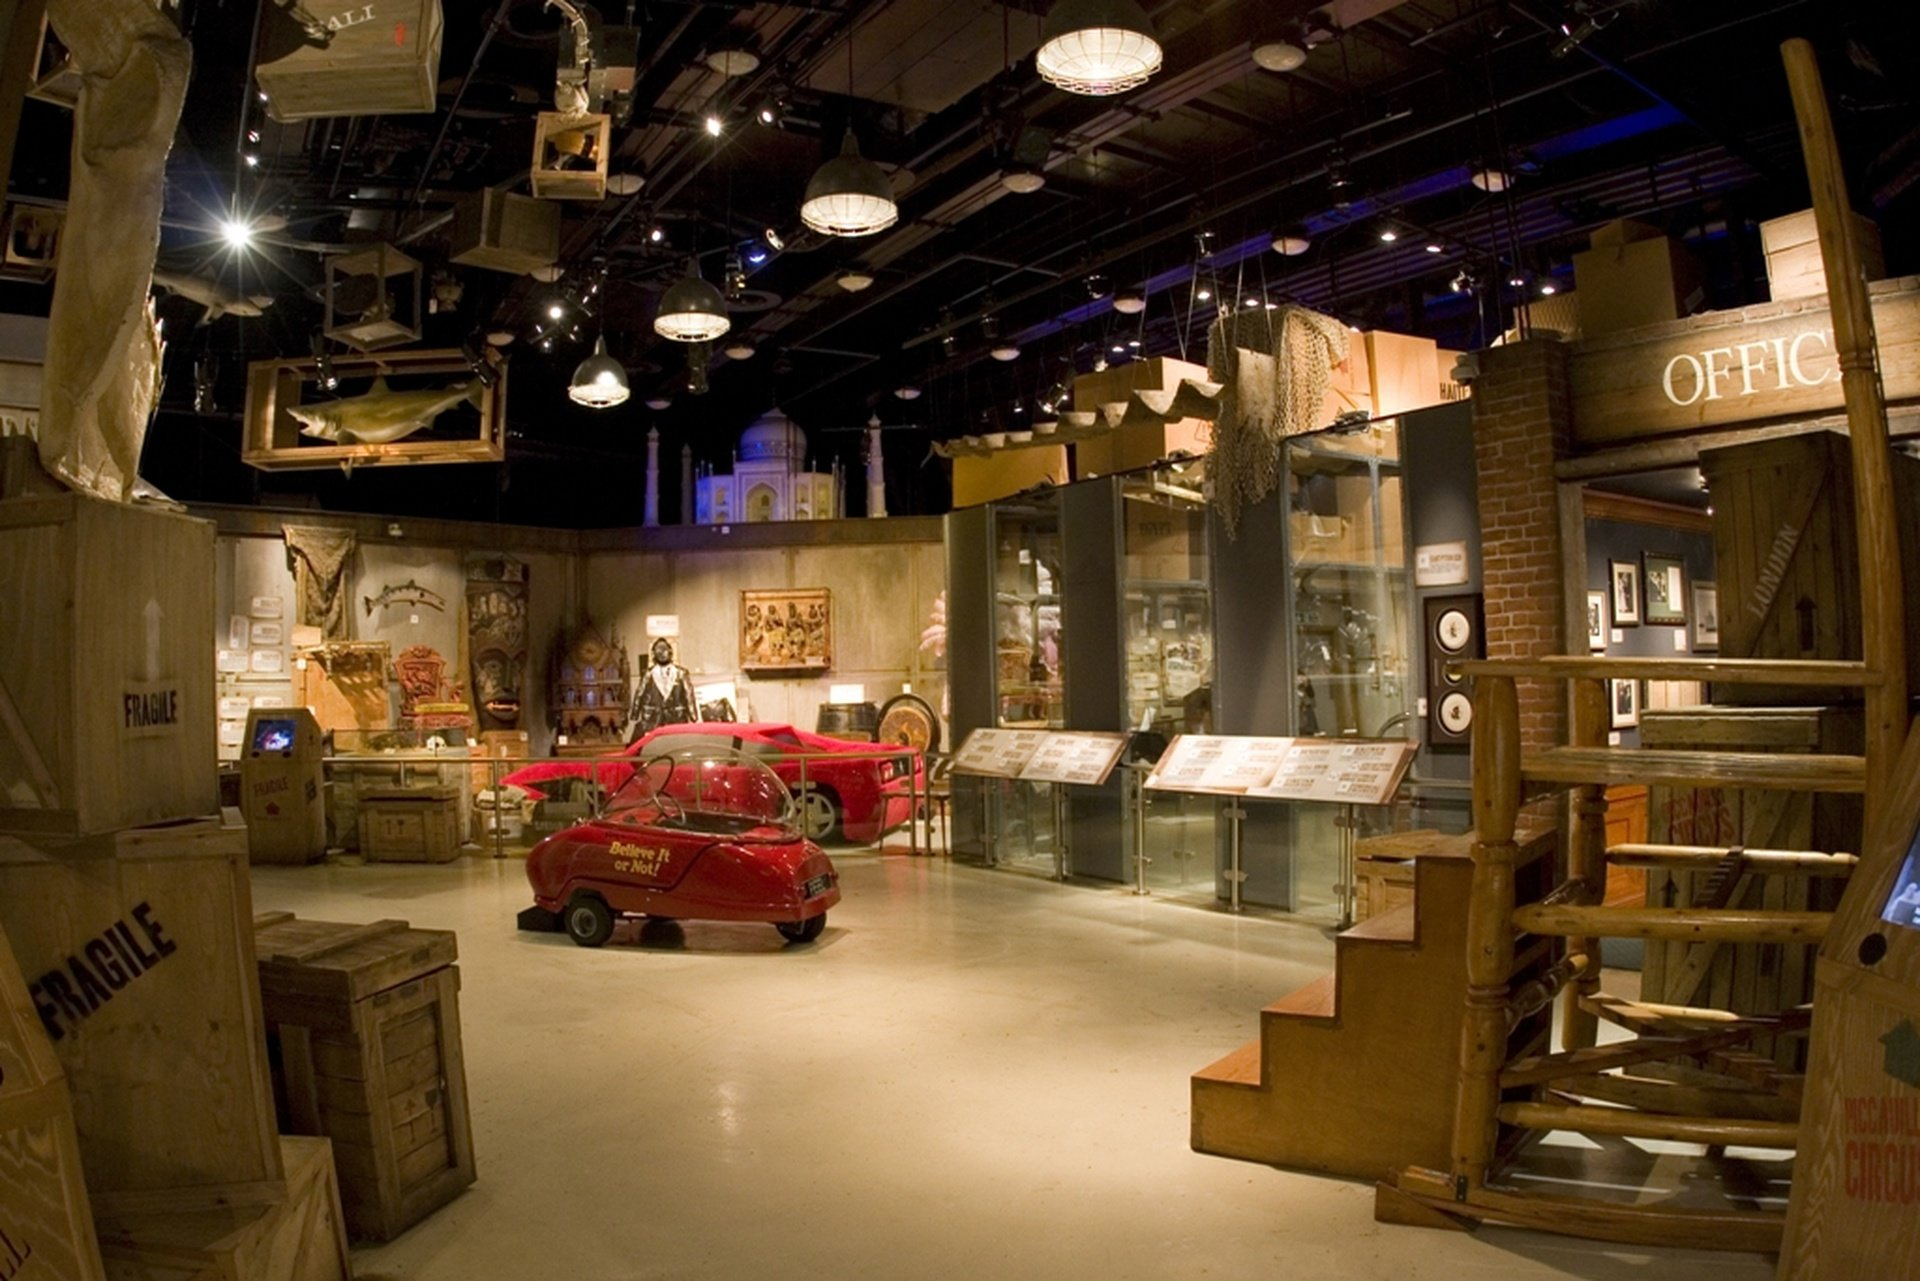 London corporate event venues Museum Ripley's Believe It Or Not image 0